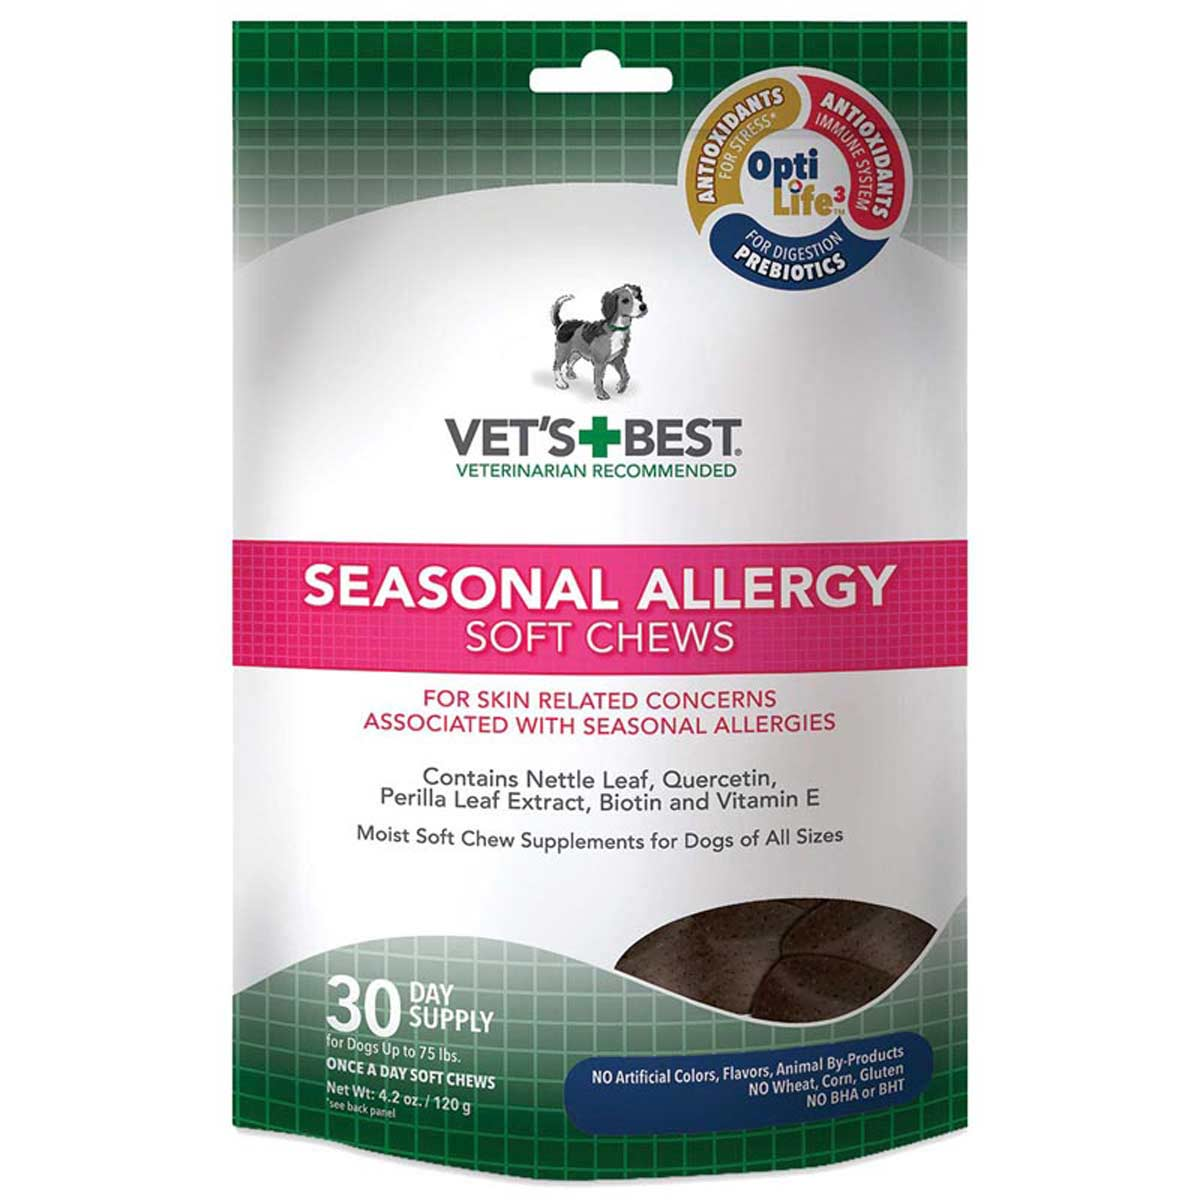 Vet's Best Seasonal Allergy Soft Chews for Dogs up to 75 lbs 30-Day Supply